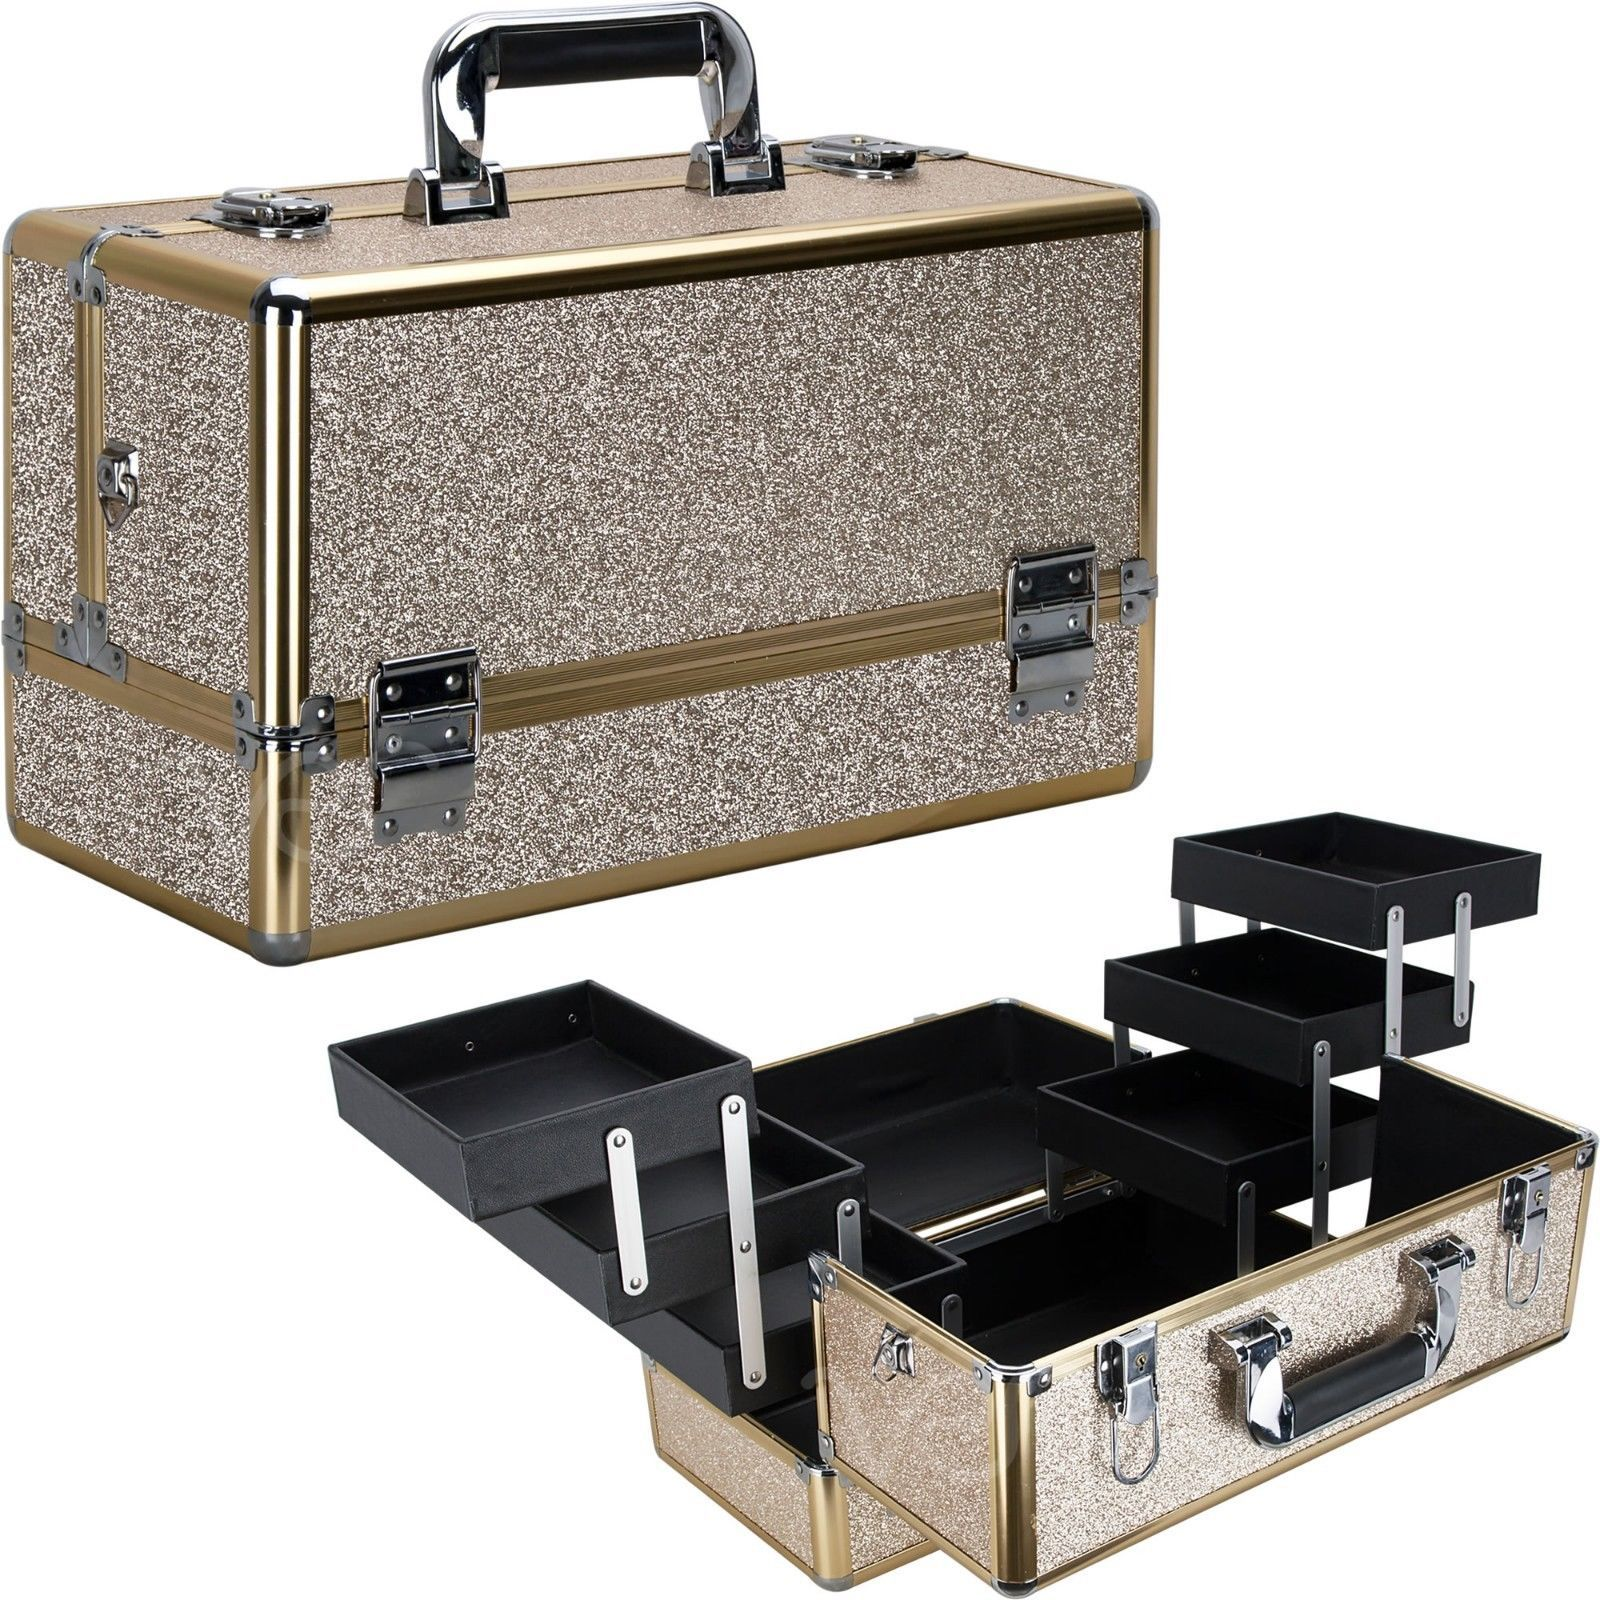 Train Case Makeup Organizer Cosmetic Beauty Travel Storage Aluminum Box Key Lock